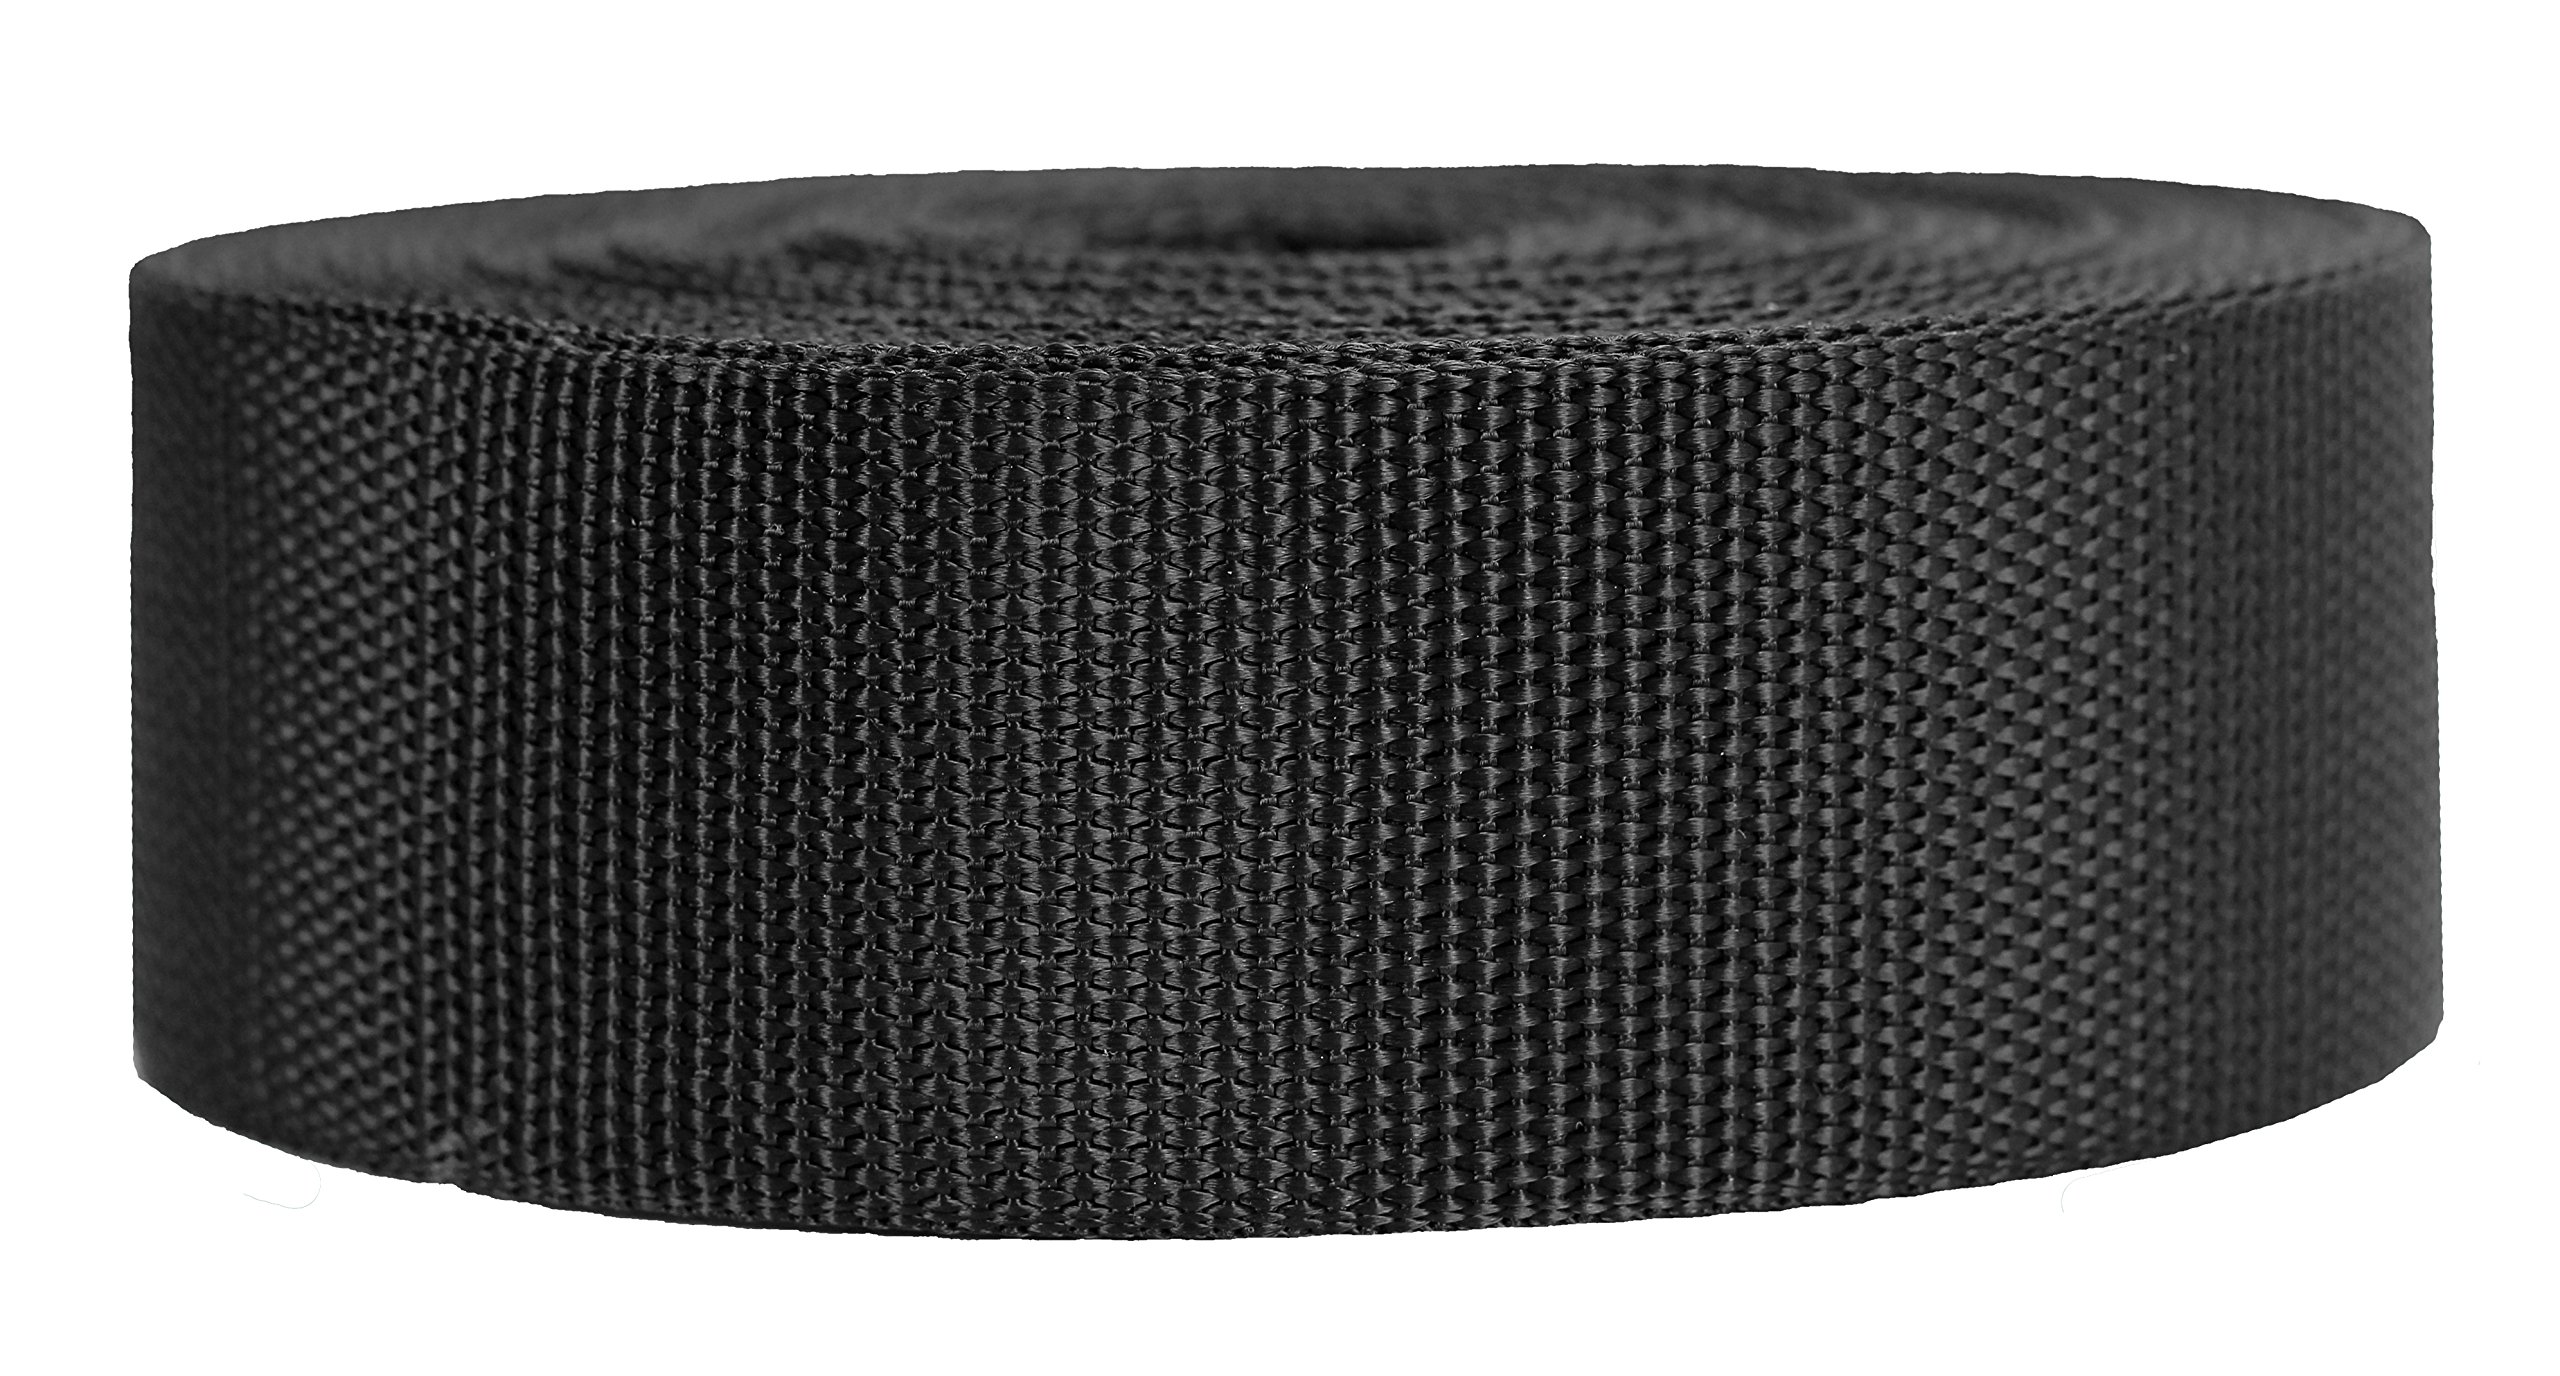 Strapworks Heavyweight Polypropylene Webbing - Heavy Duty Poly Strapping for Outdoor DIY Gear Repair, 2 Inch x 10 Yards - Black